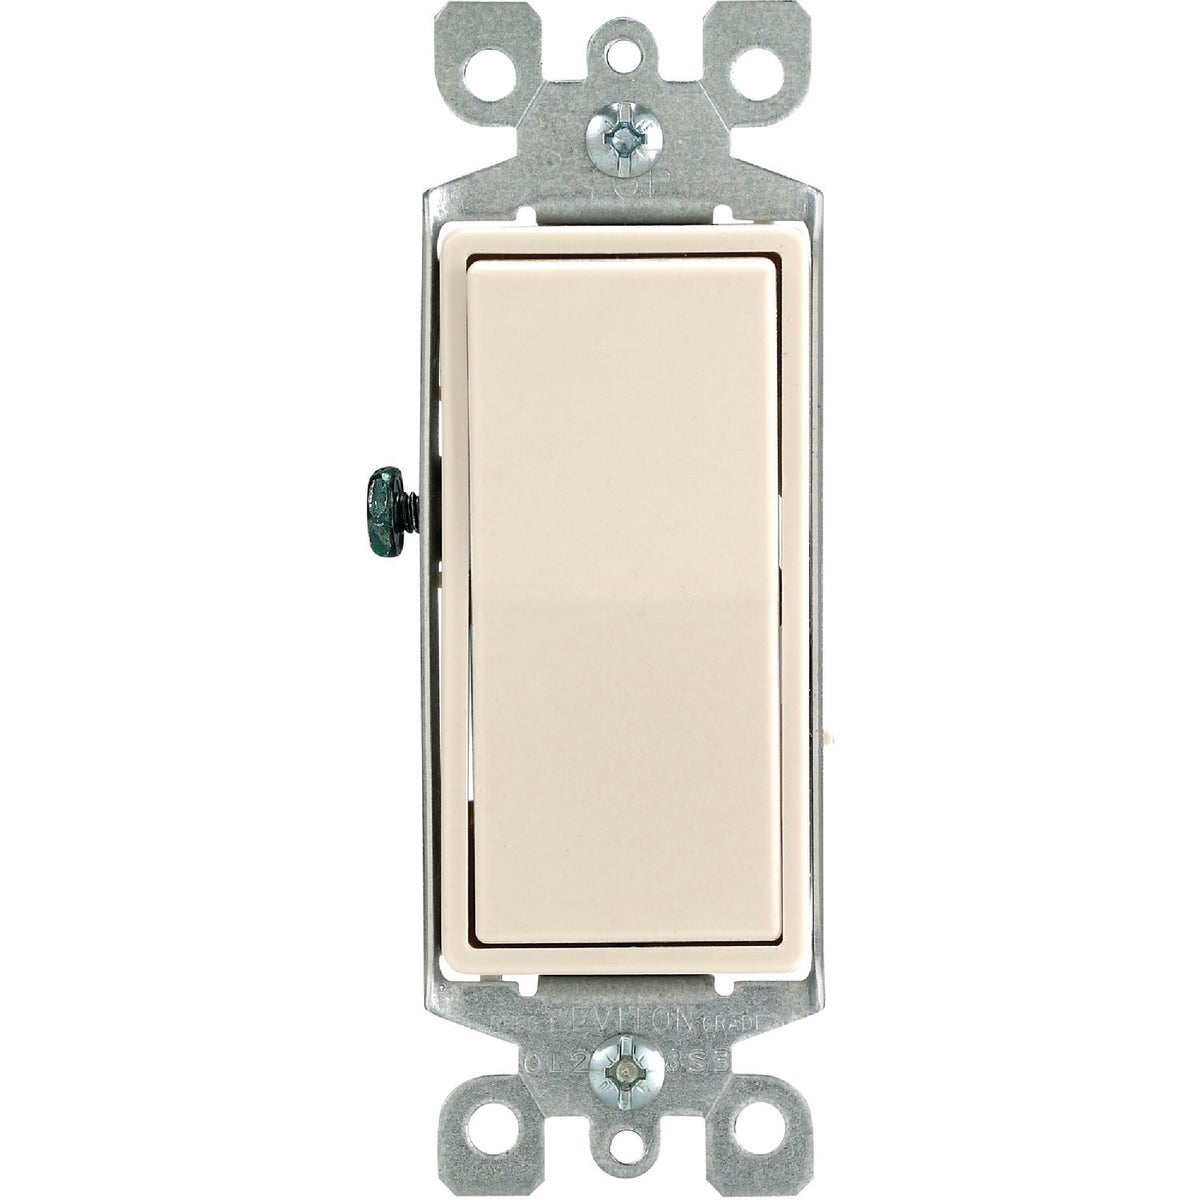 LT ALM GRND SWITCH - S16-5611-2TS by Leviton Mfg Co